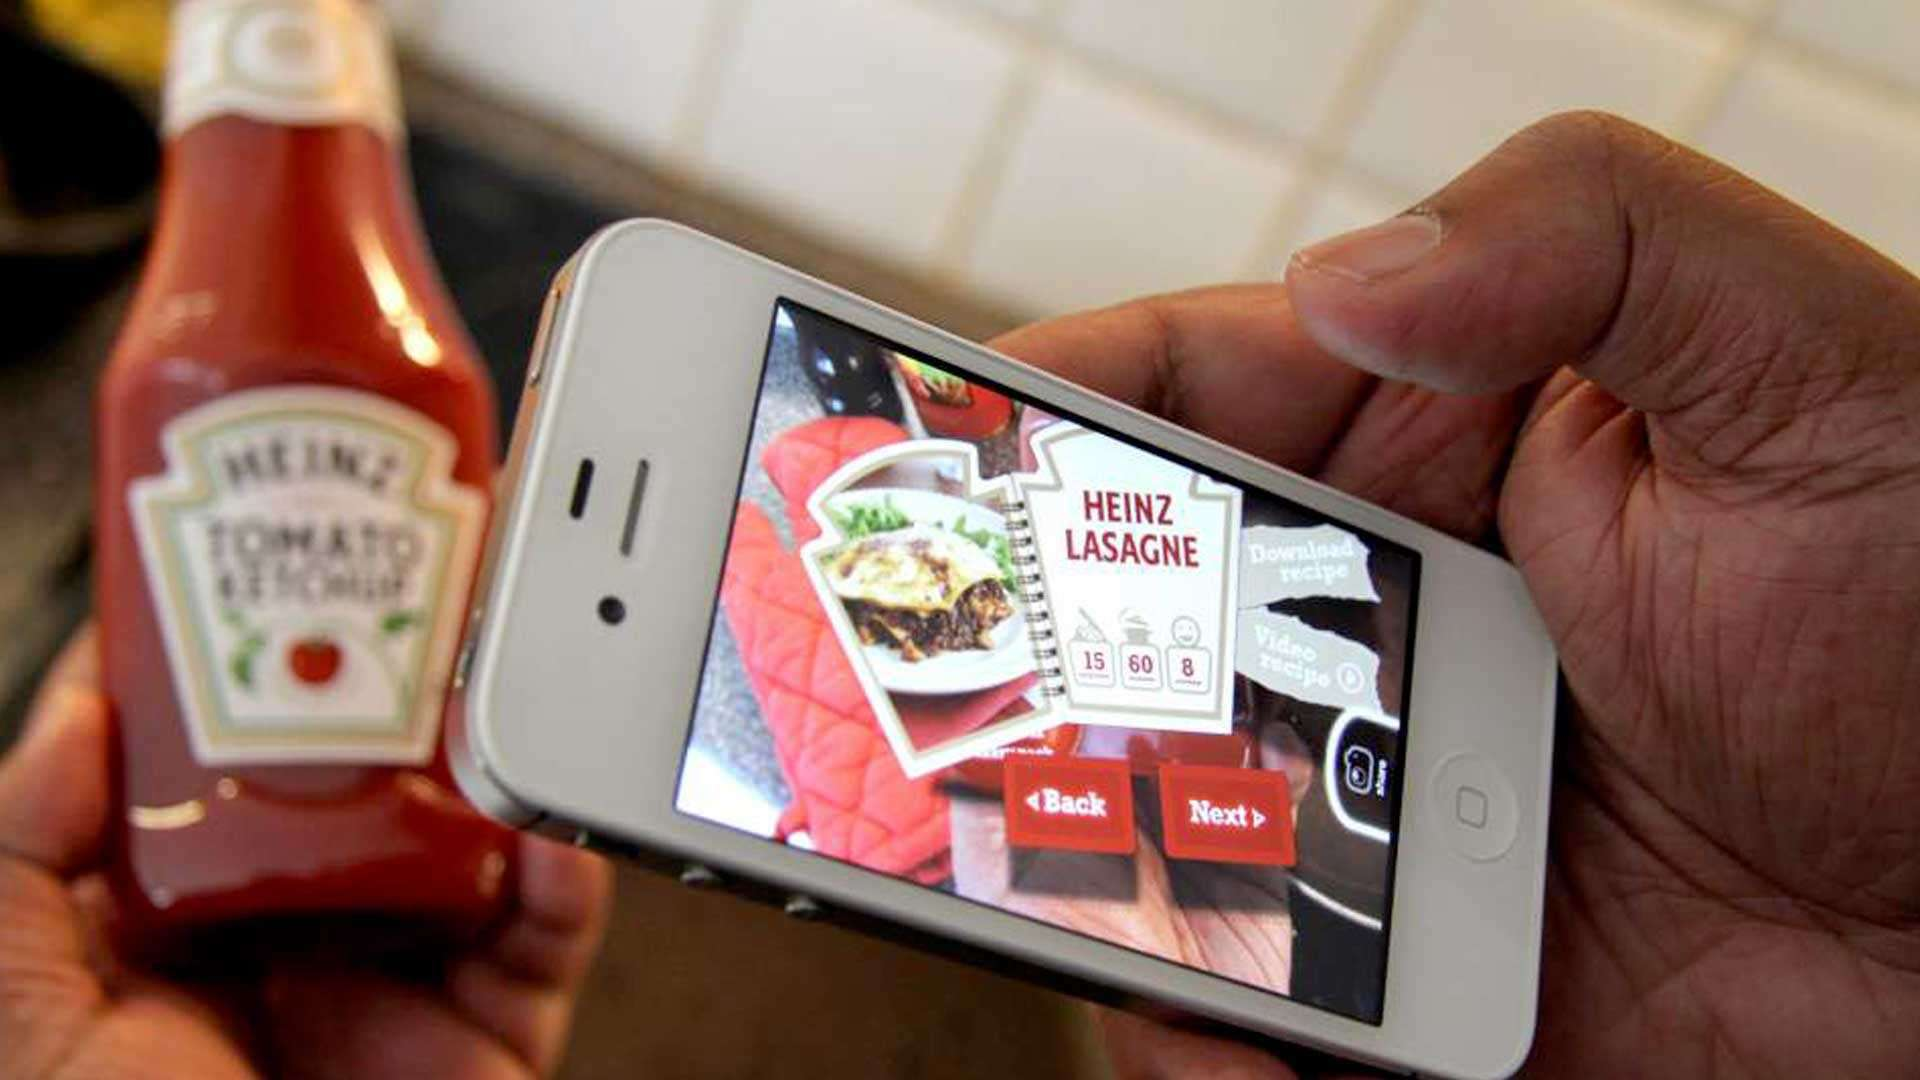 Augmented Reality is already being used in packaging to make products such as Heinz Ketchup stand out